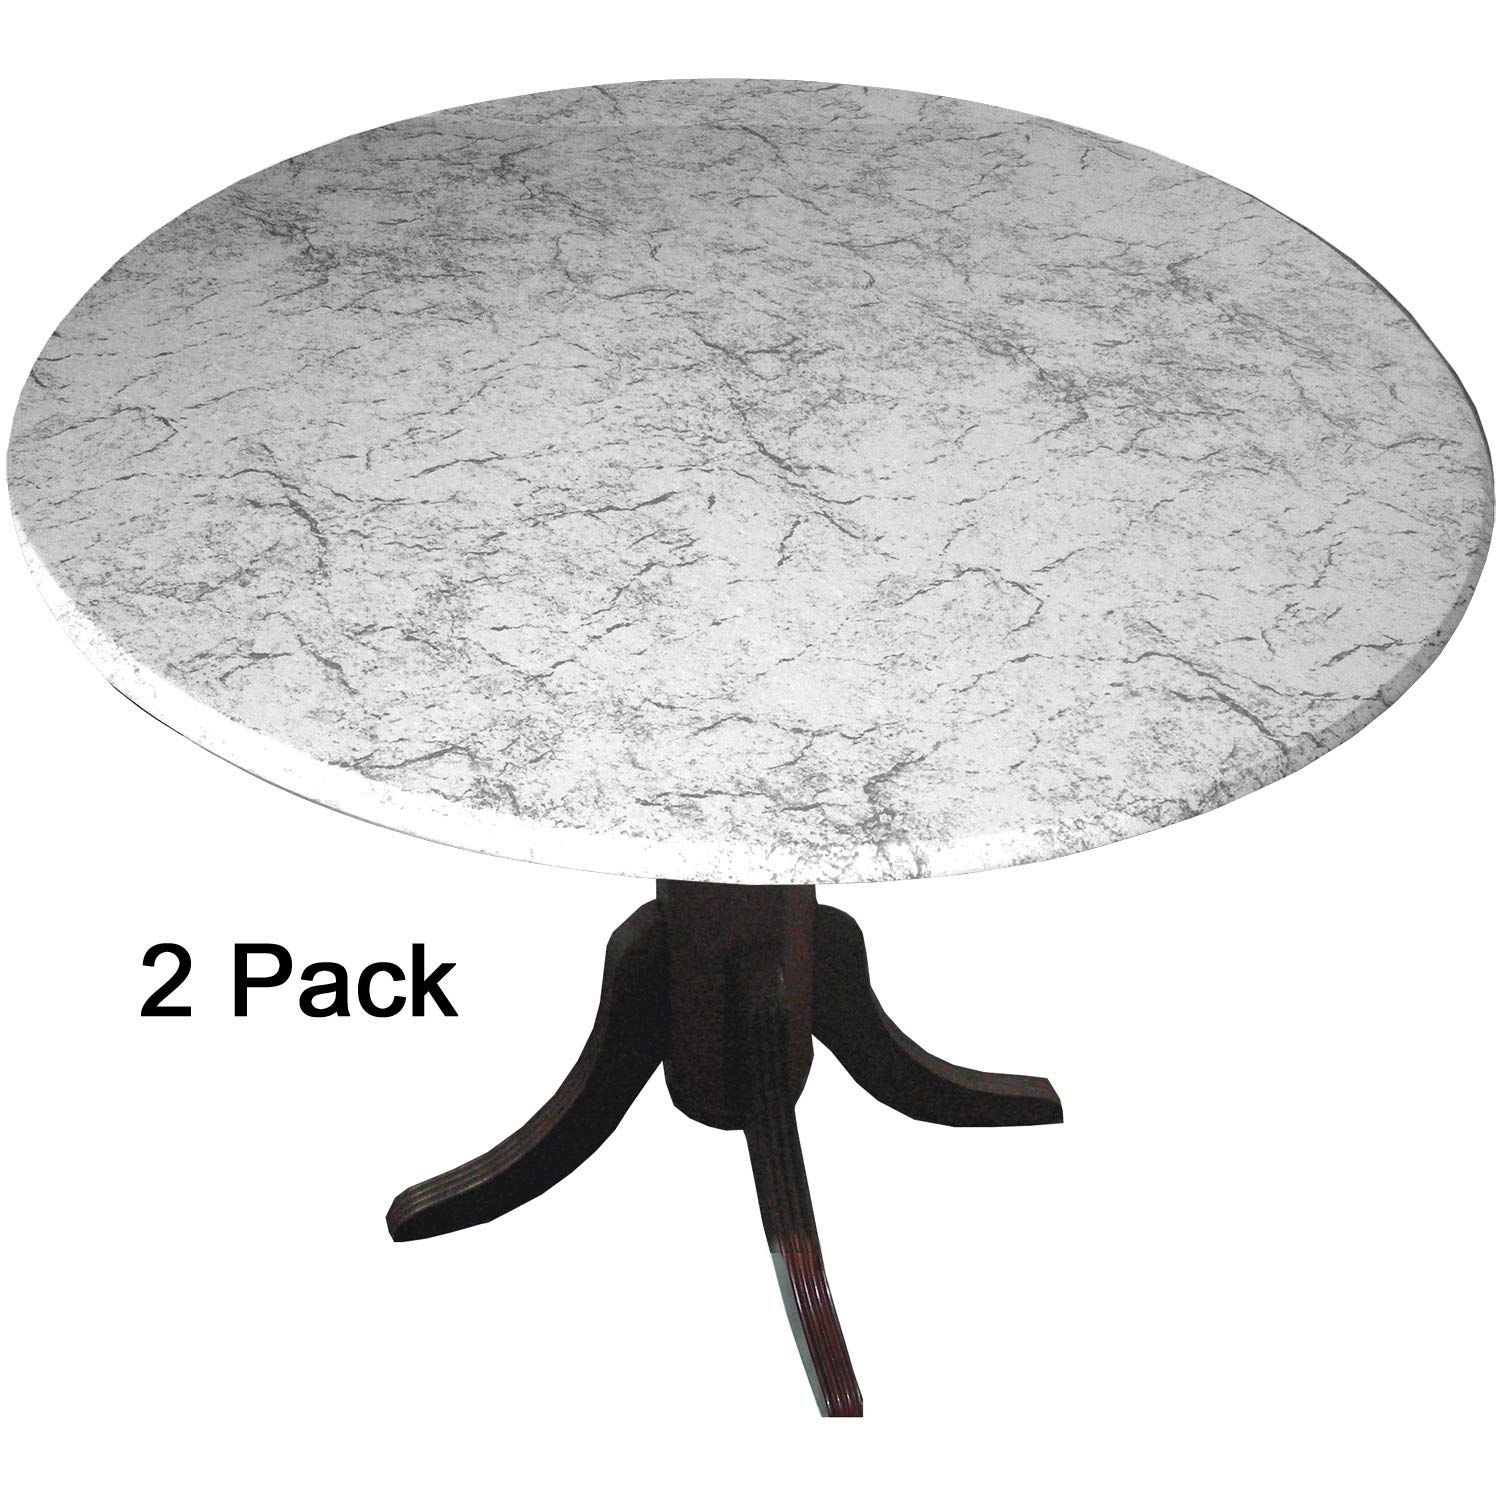 2 Pack MarbleTop Fitted Vinyl tablecloths (tablecovers, Table Covers) - Florentine Marble White